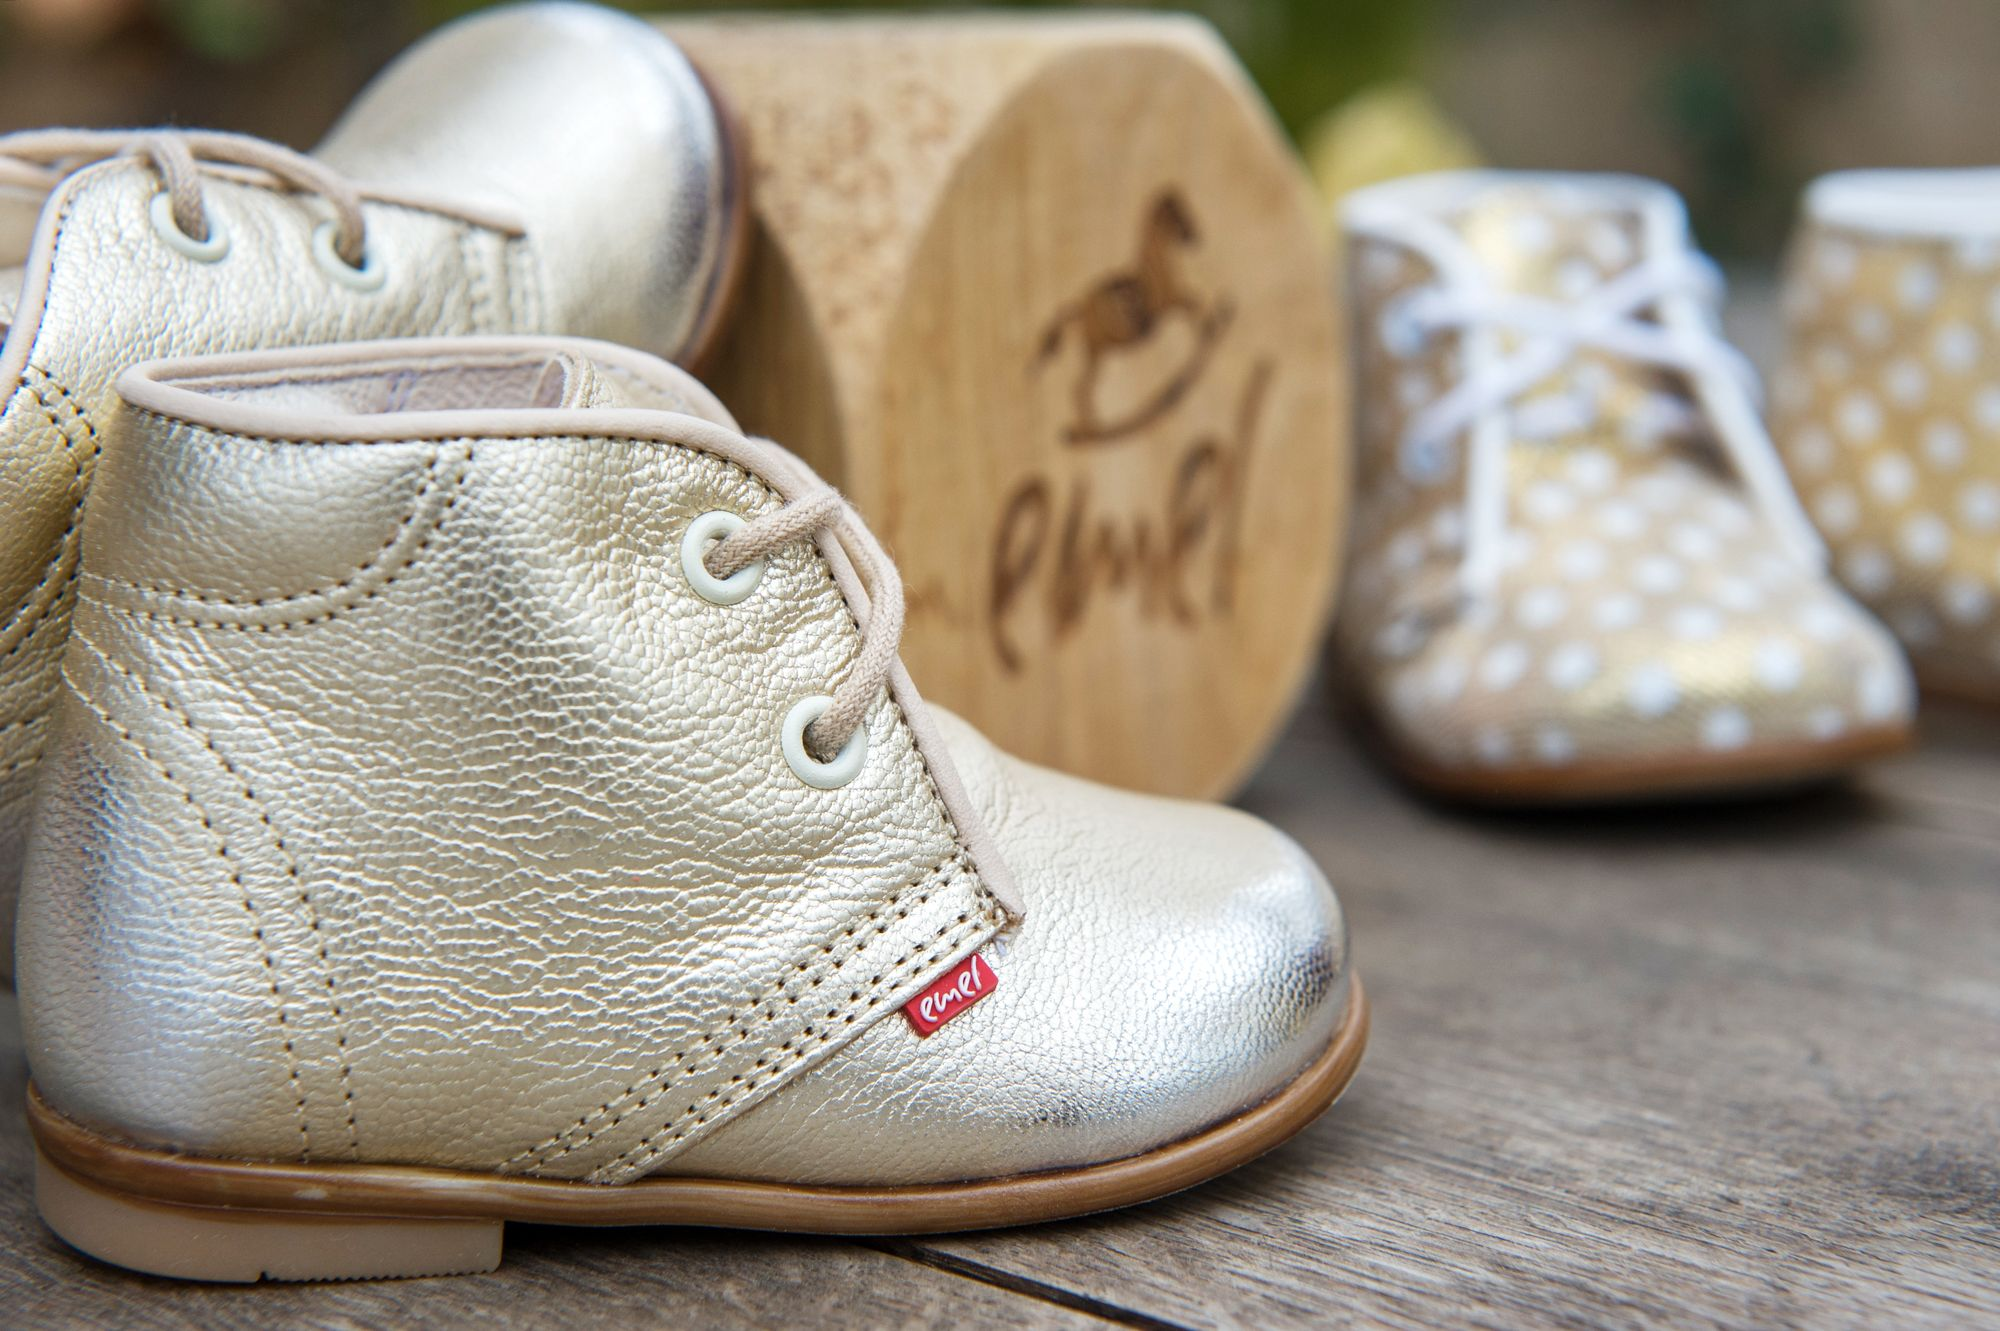 ab7c9b578 Handmade children shoes - Emel shoes - made in Europe - golden shoes - baby  shoes